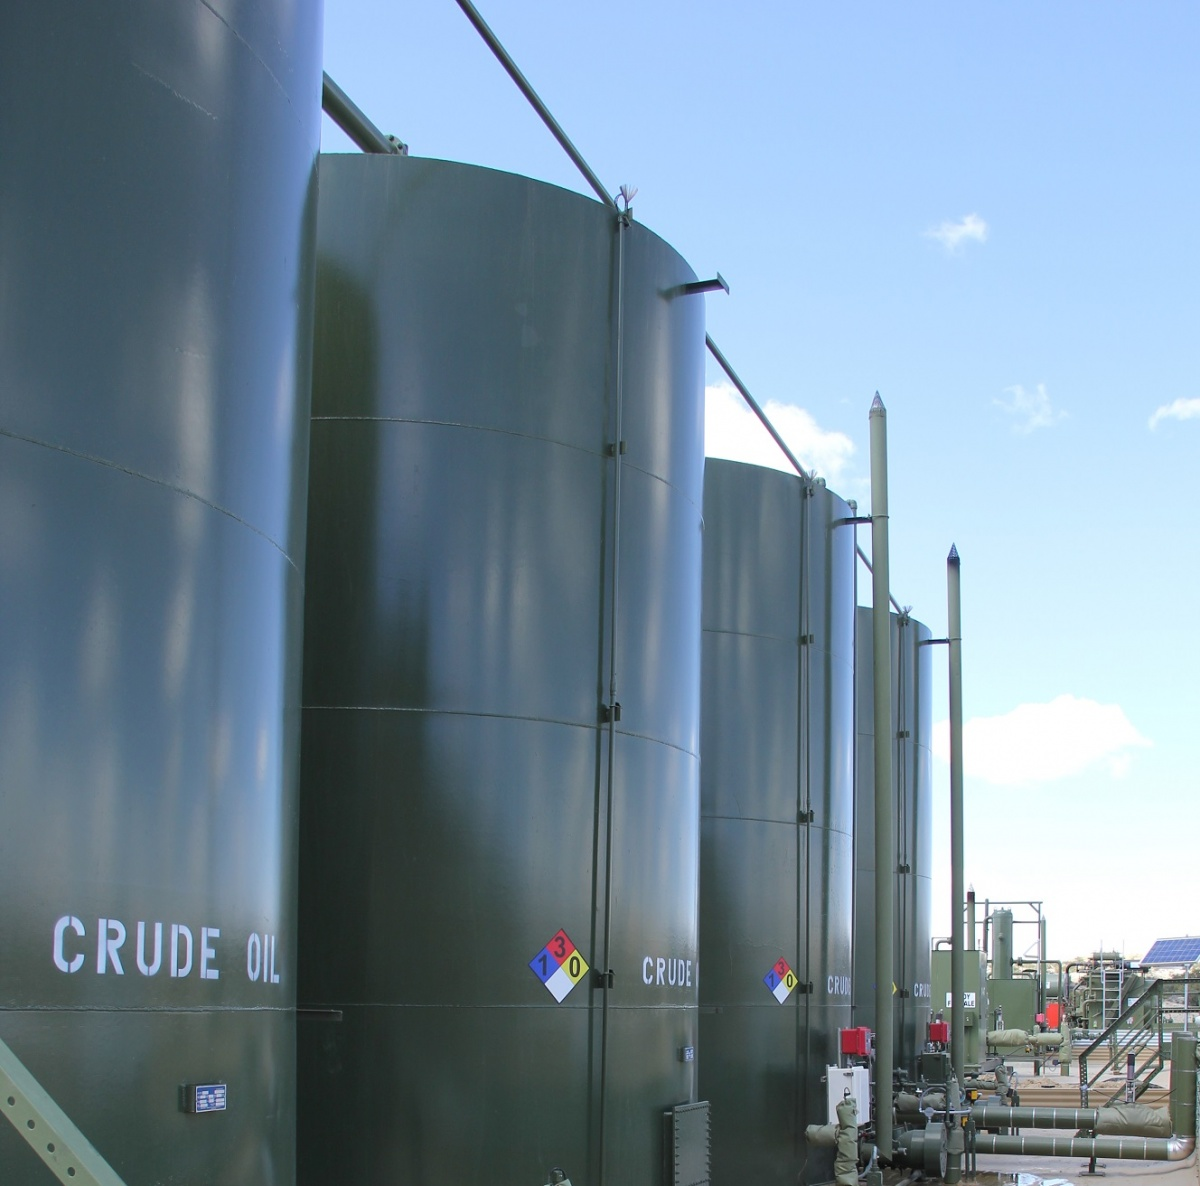 Row of crude oil containers. BLM photo